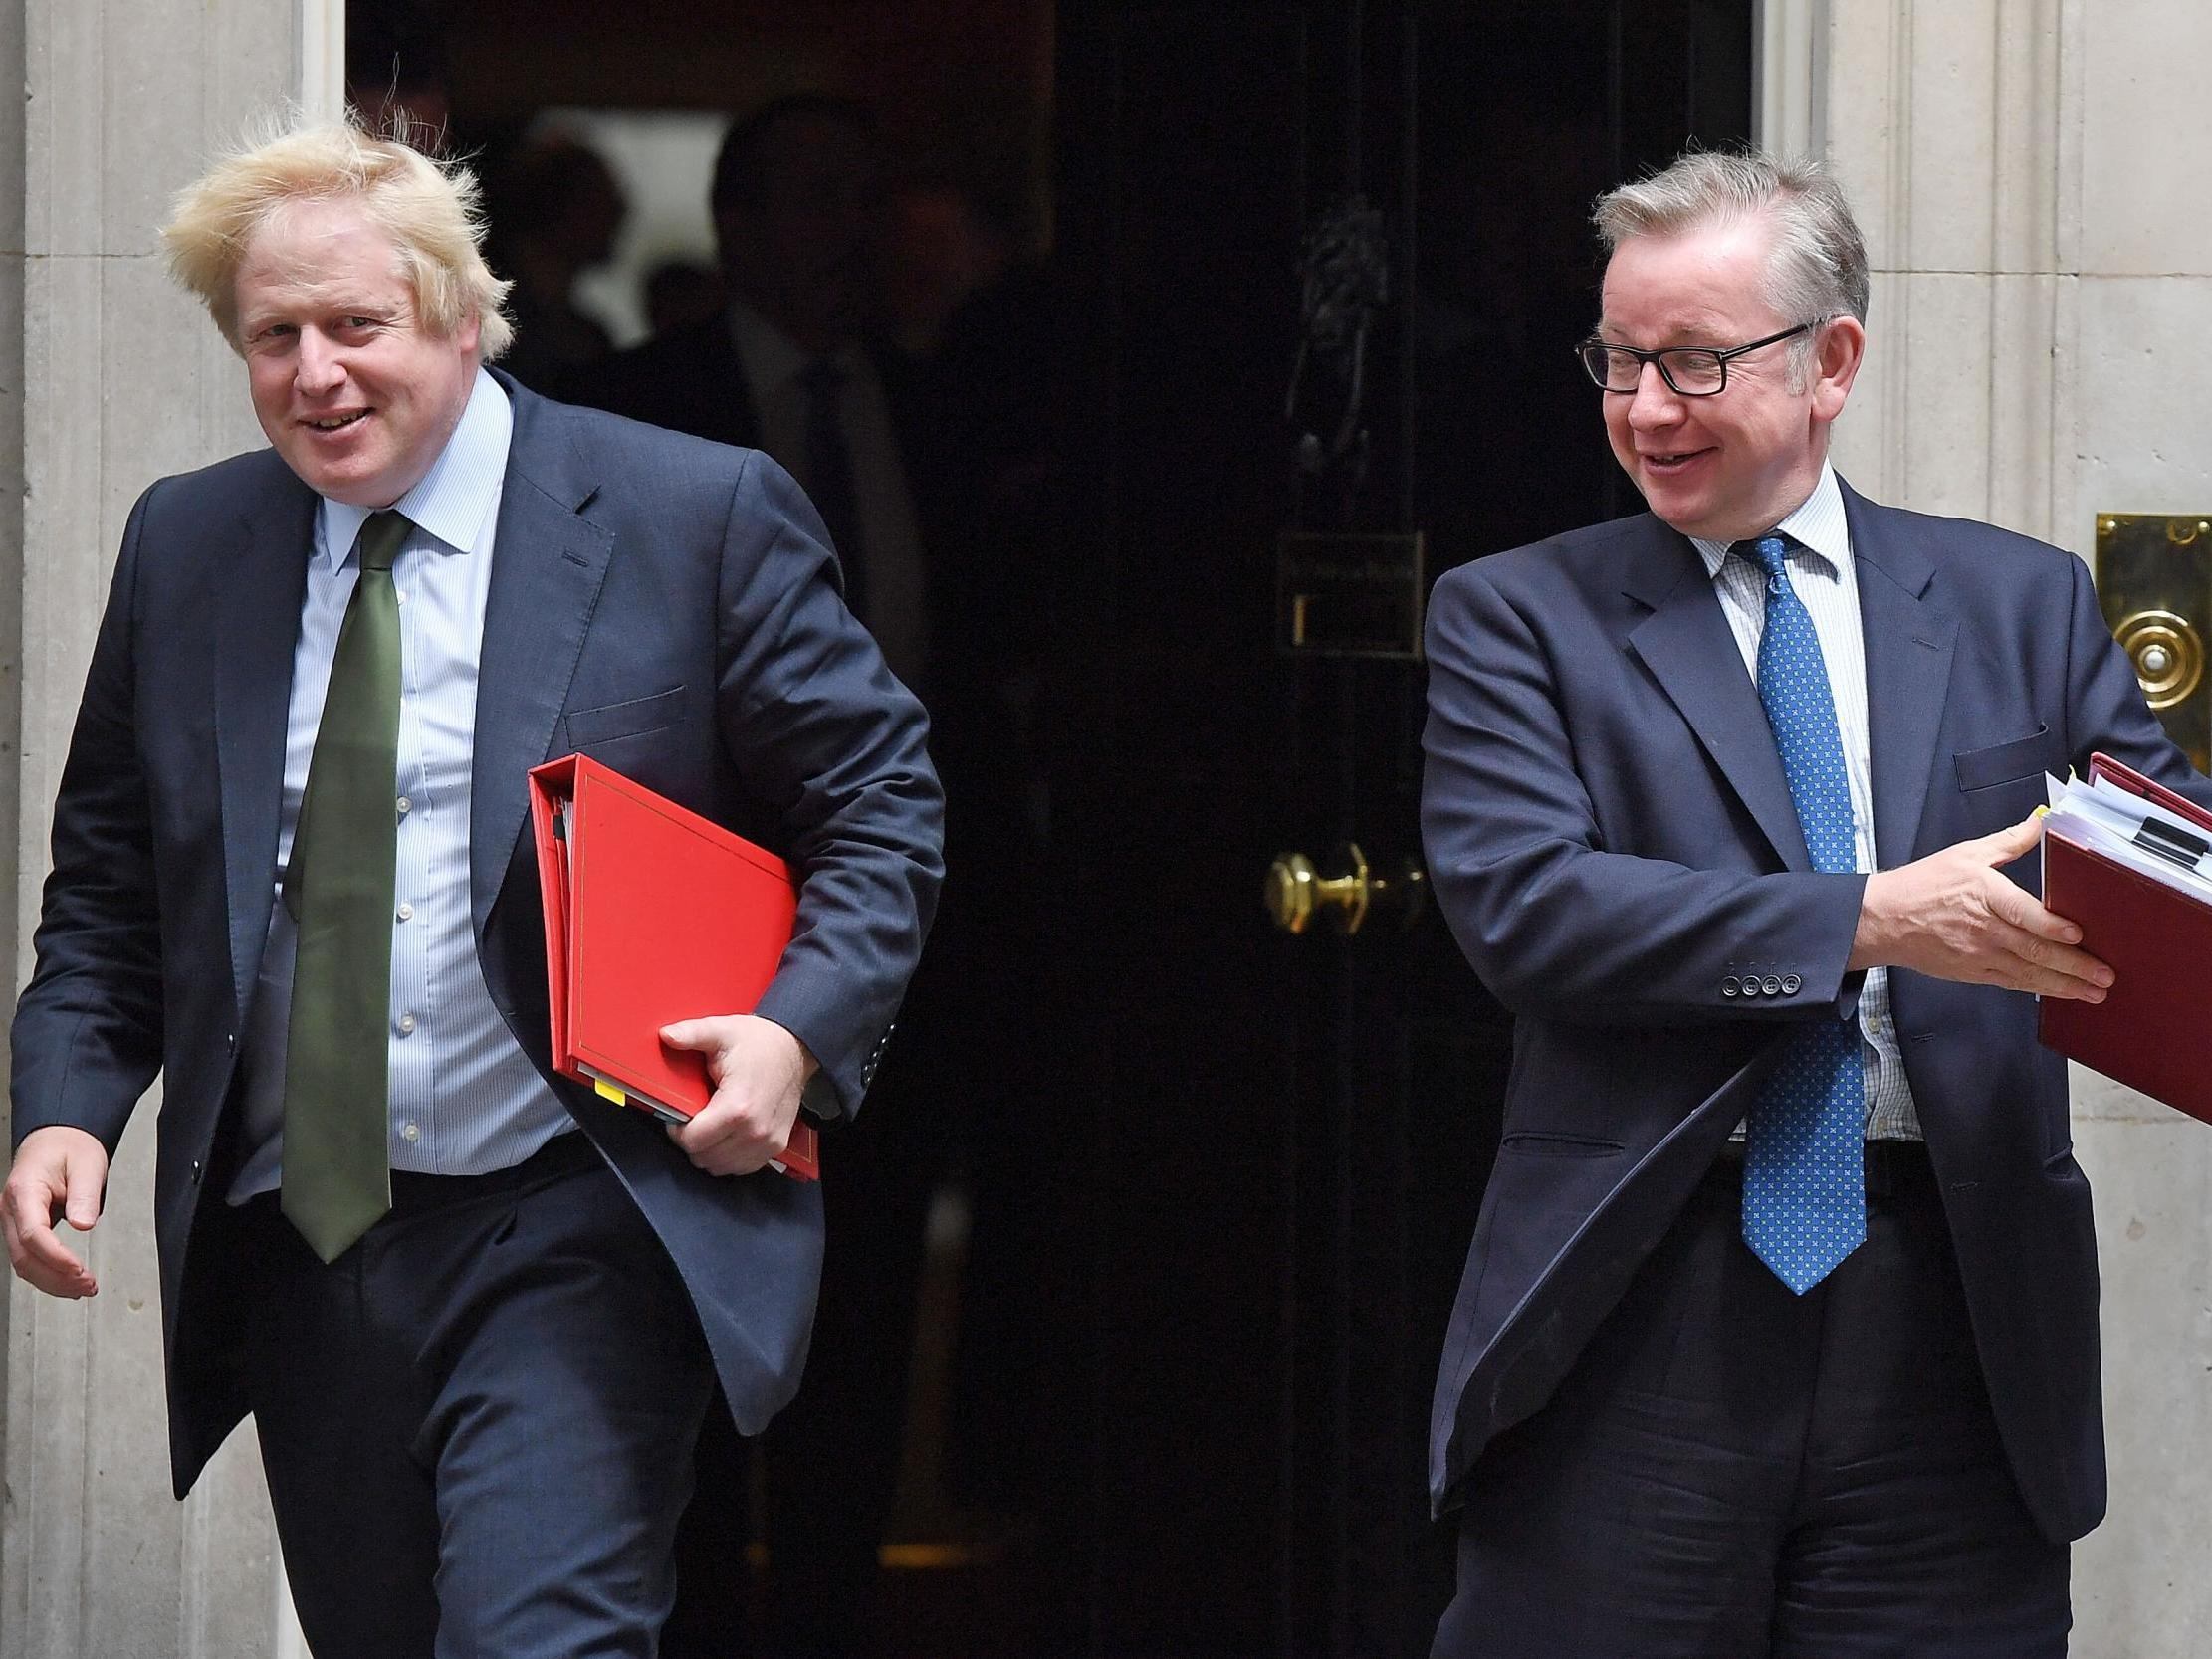 Boris Johnson and Michael Gove 'sold in slave auction' at Oxford Union